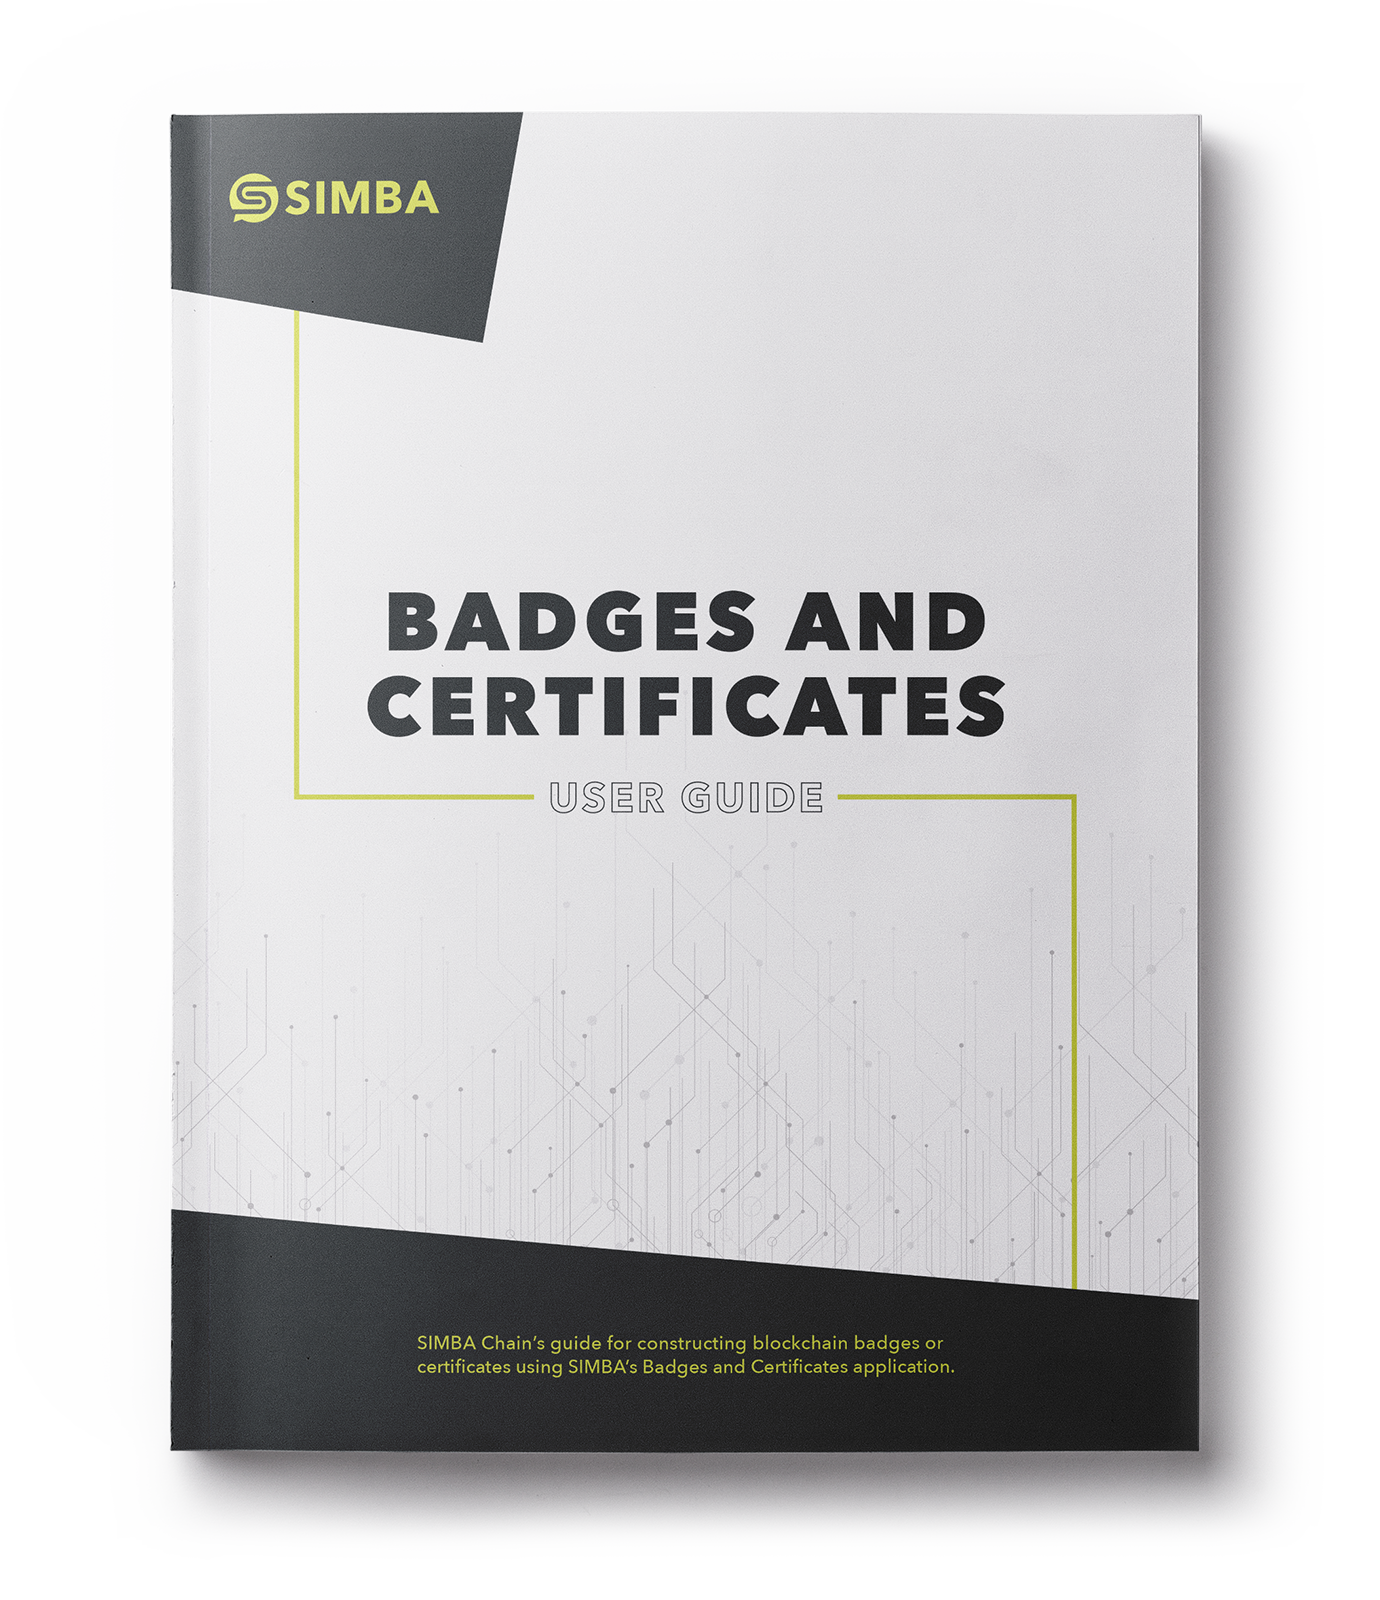 SIMBA Chain Badges and Certificates